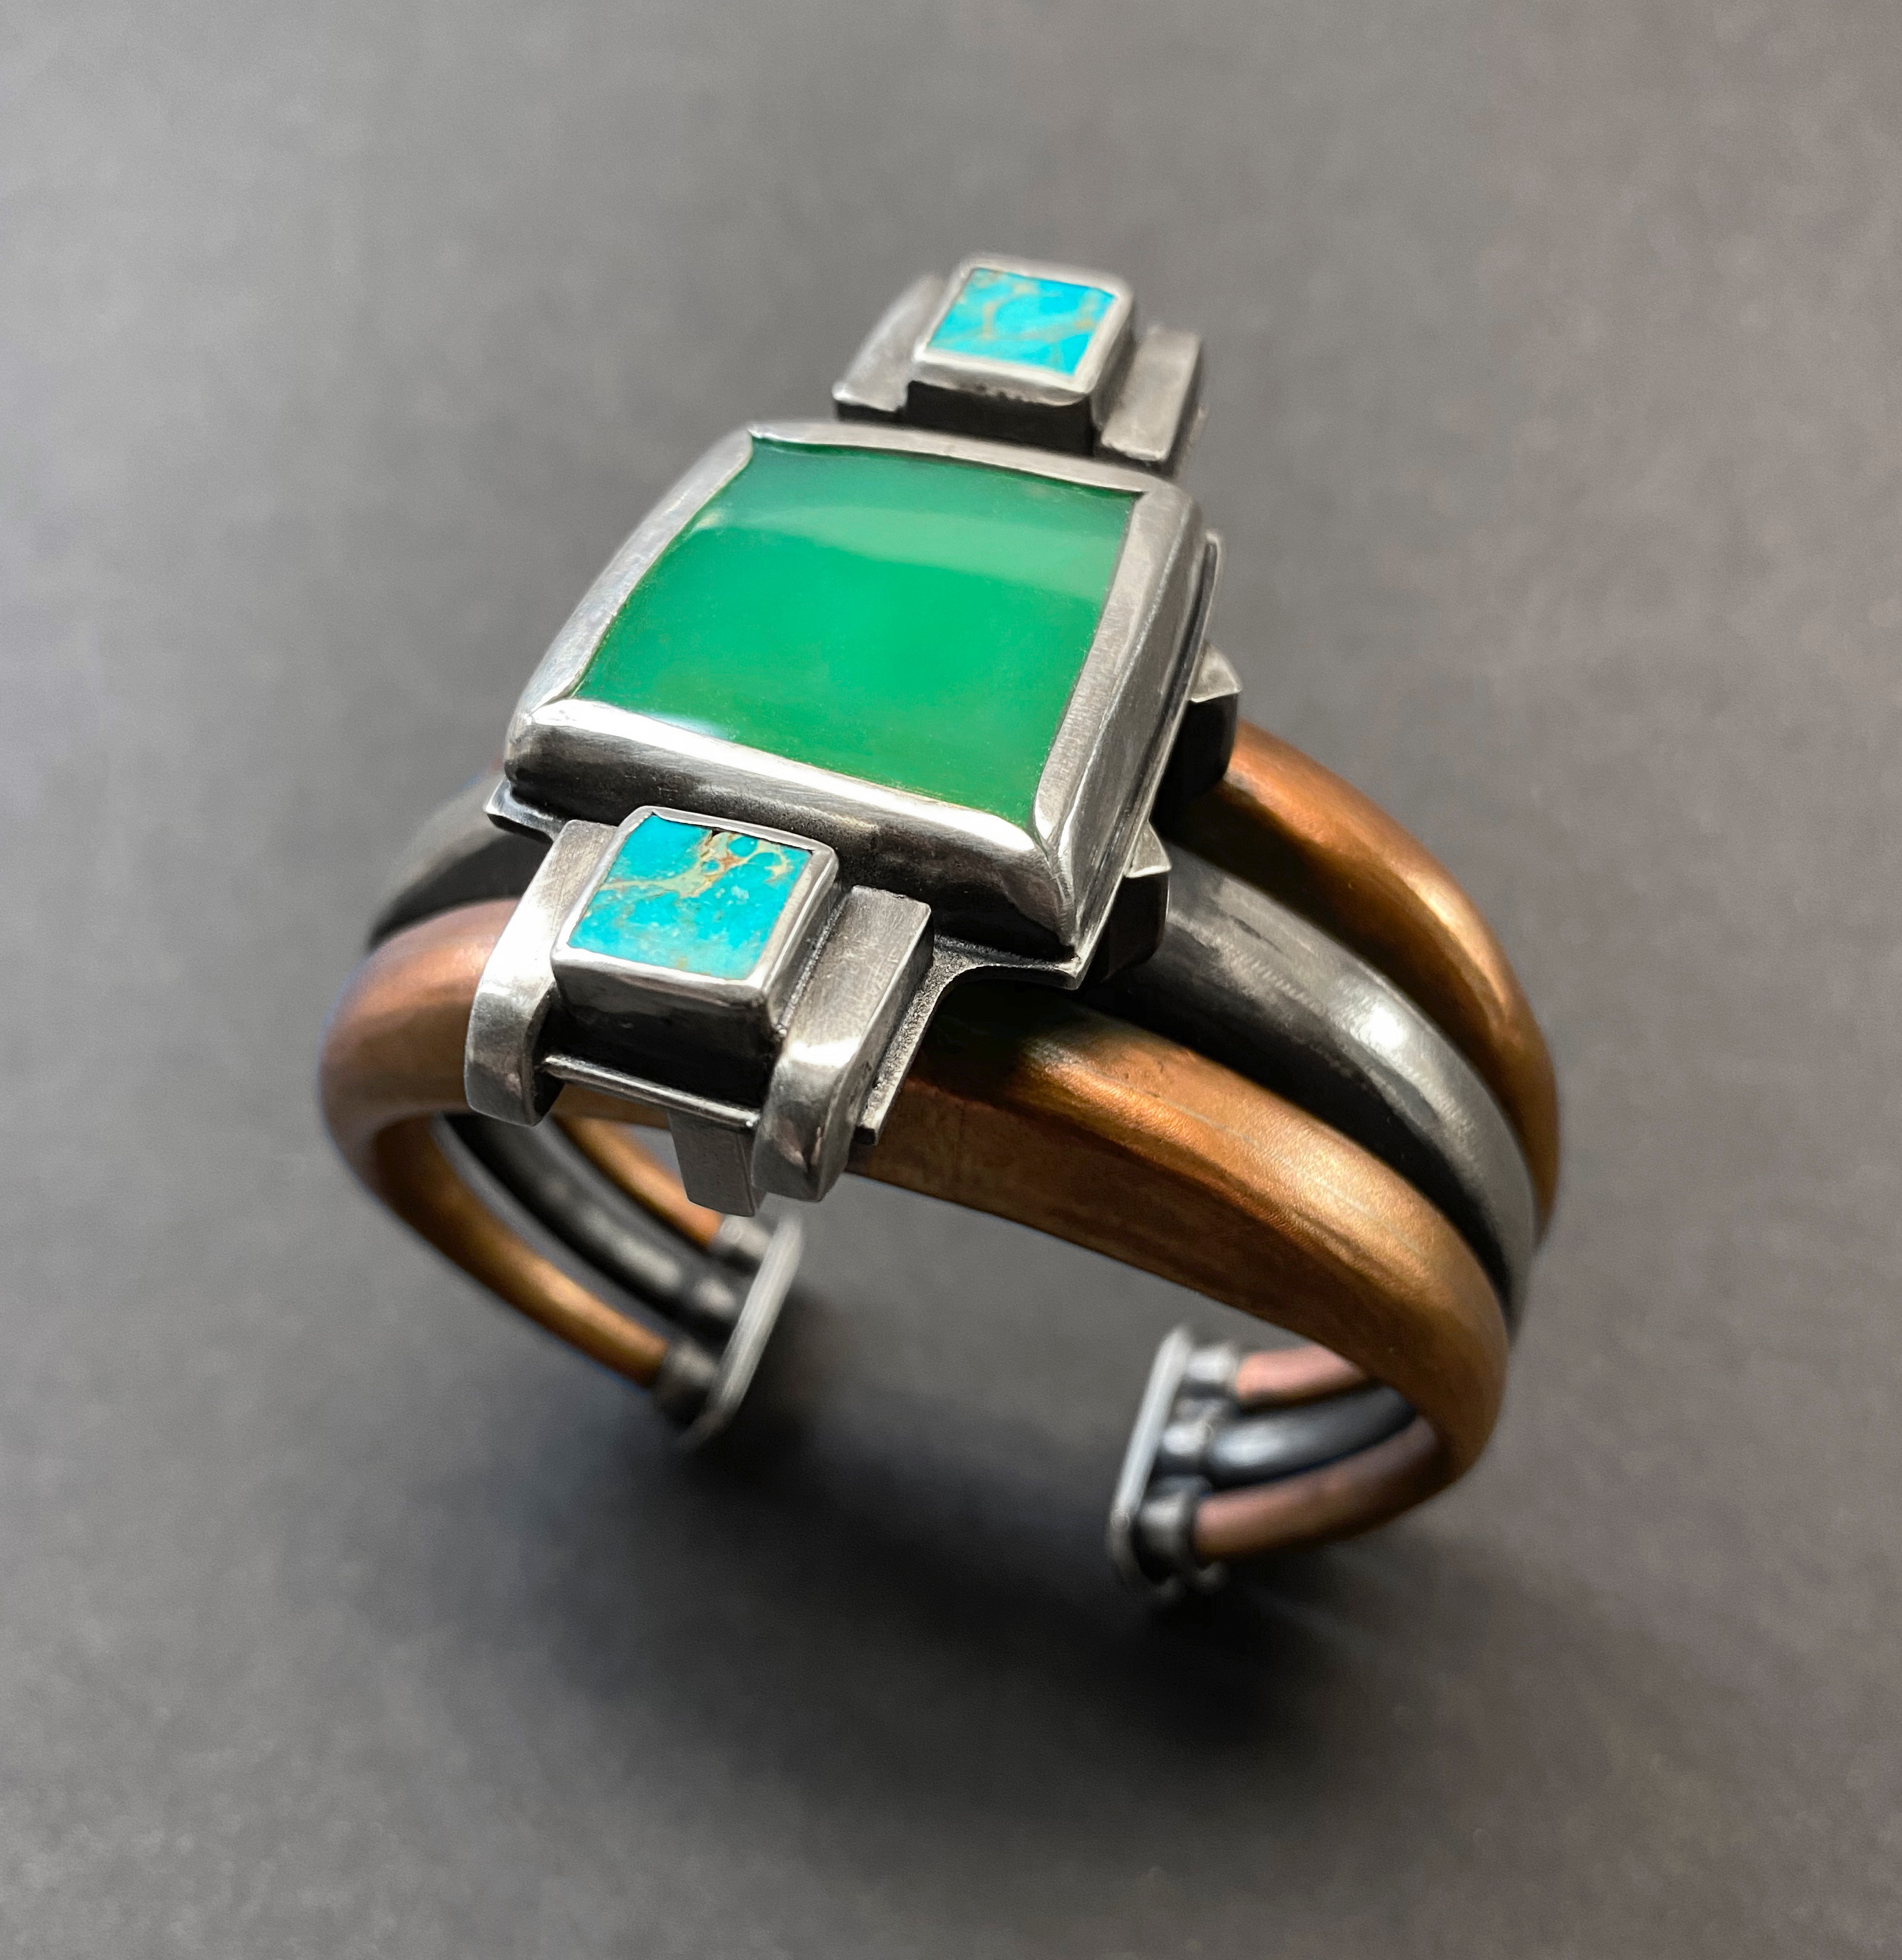 Michael Gleason • New Horizons Bracelet • Sterling silver, copper, chrysoprase, turquoise • $500